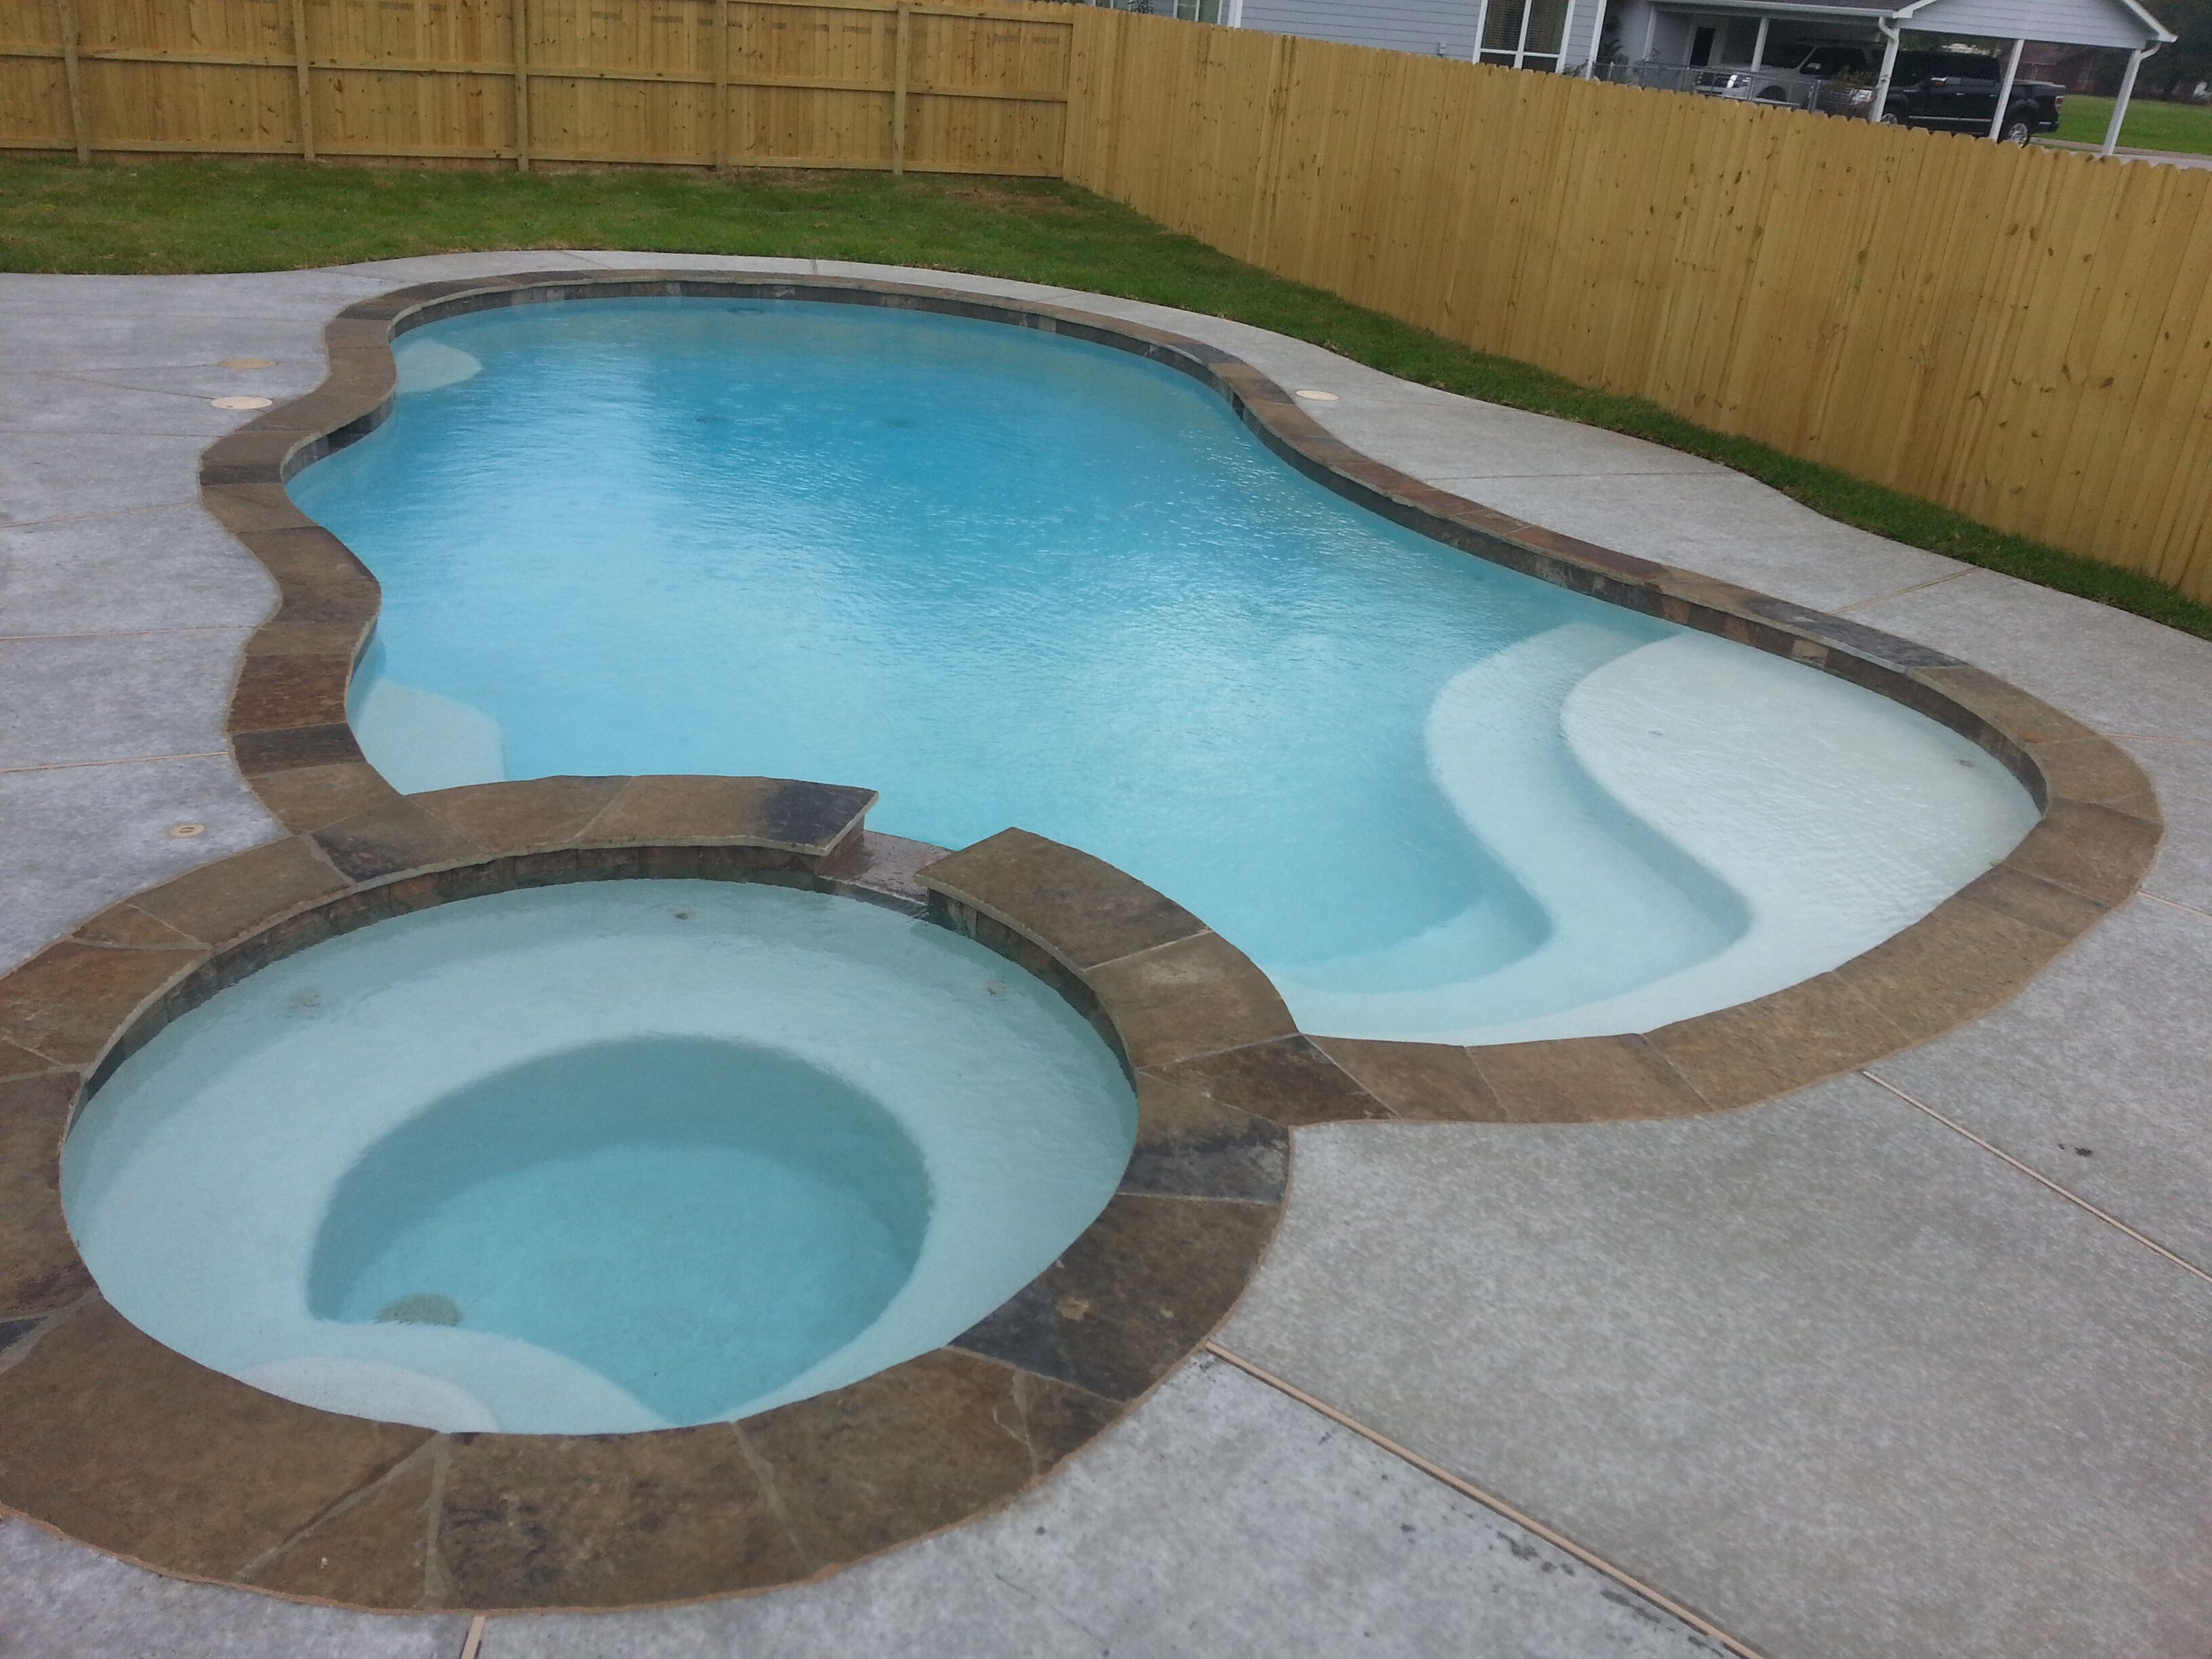 The Environmentally-Conscious Pool Owner's Guide to Conservation